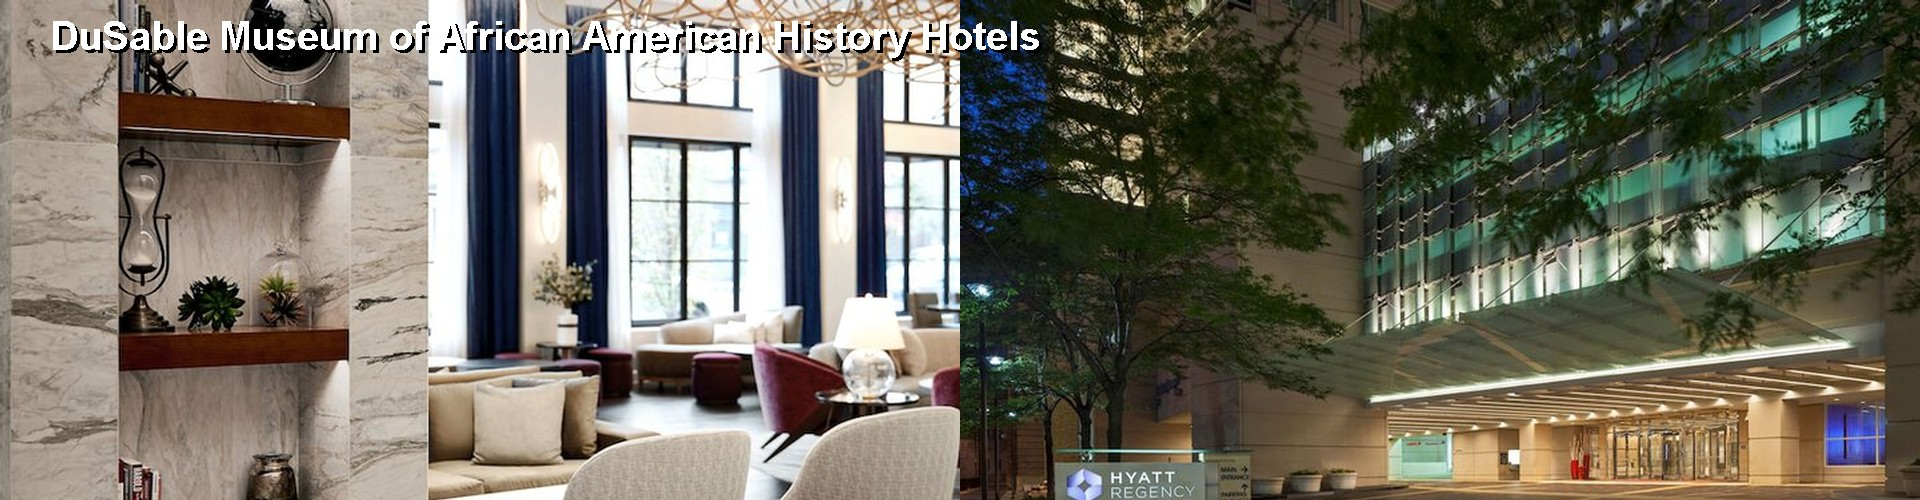 5 Best Hotels near DuSable Museum of African American History